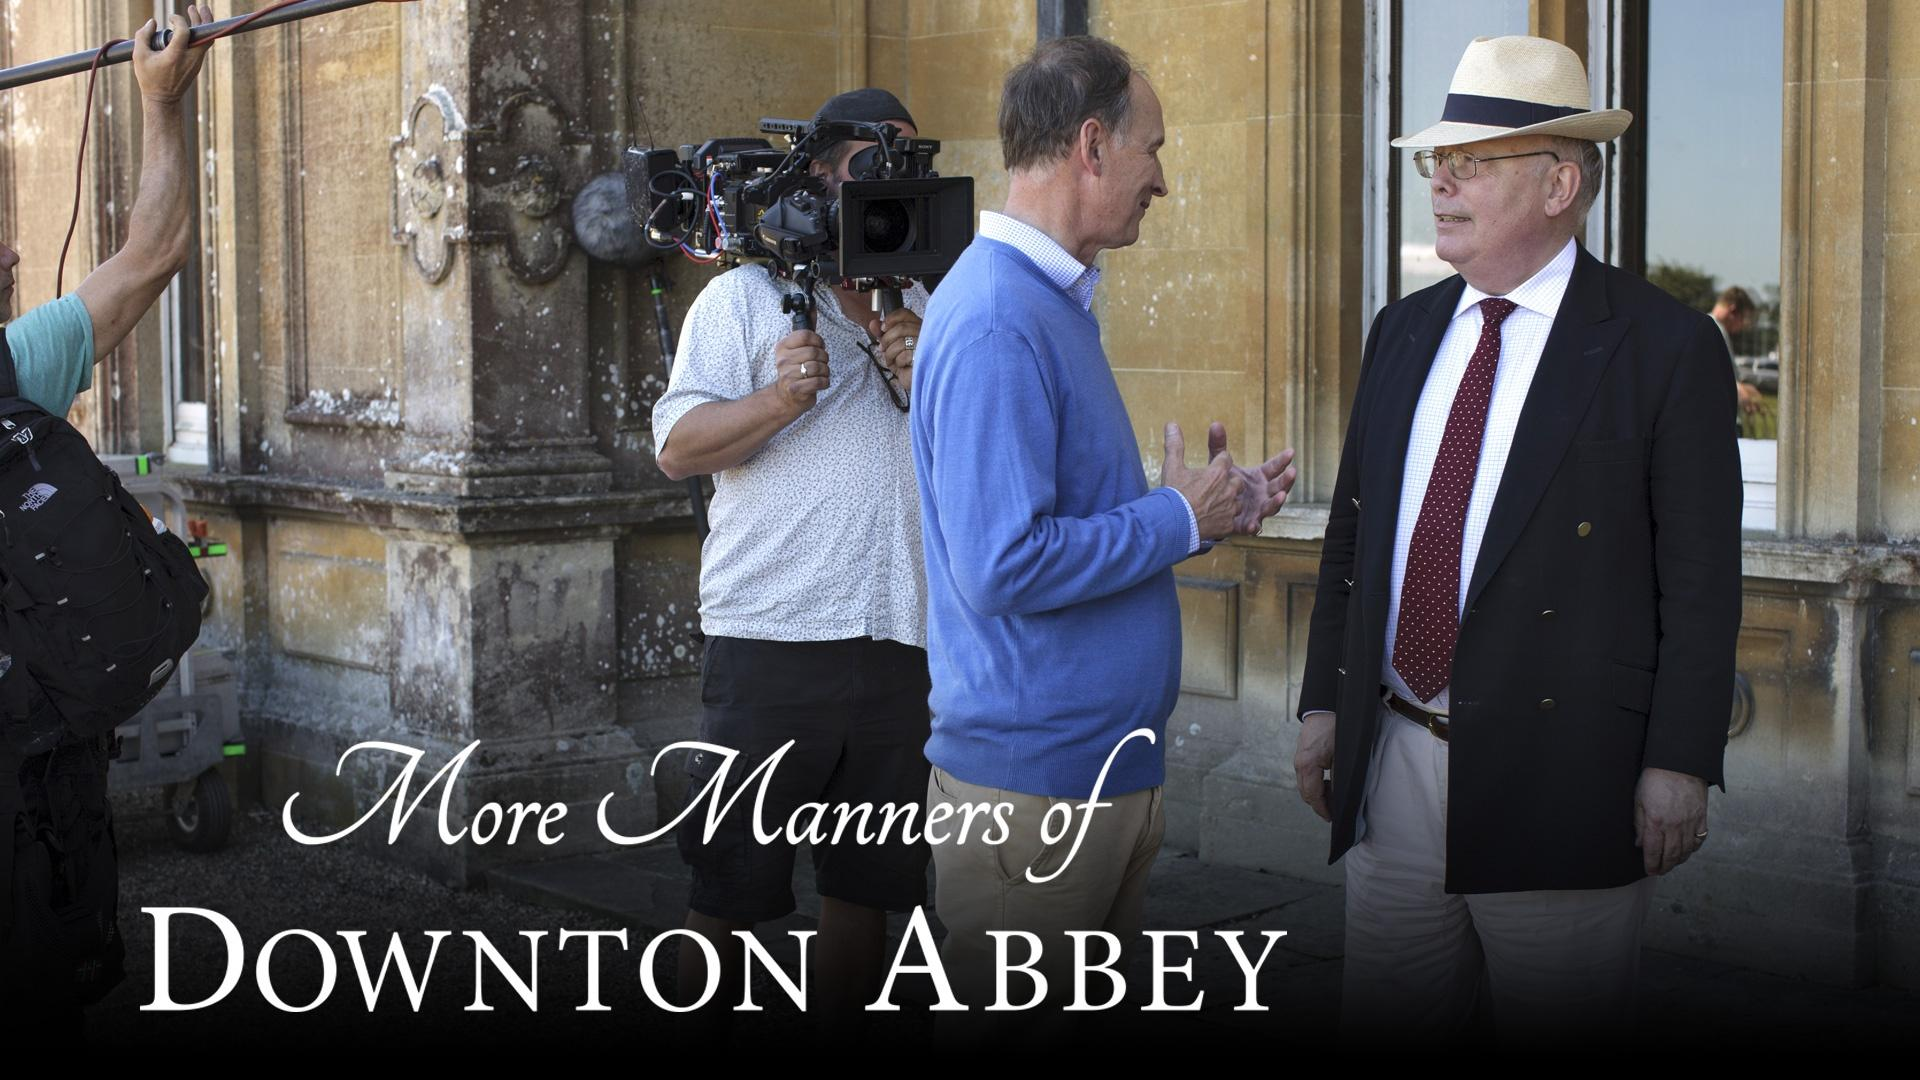 More Manners of Downton Abbey